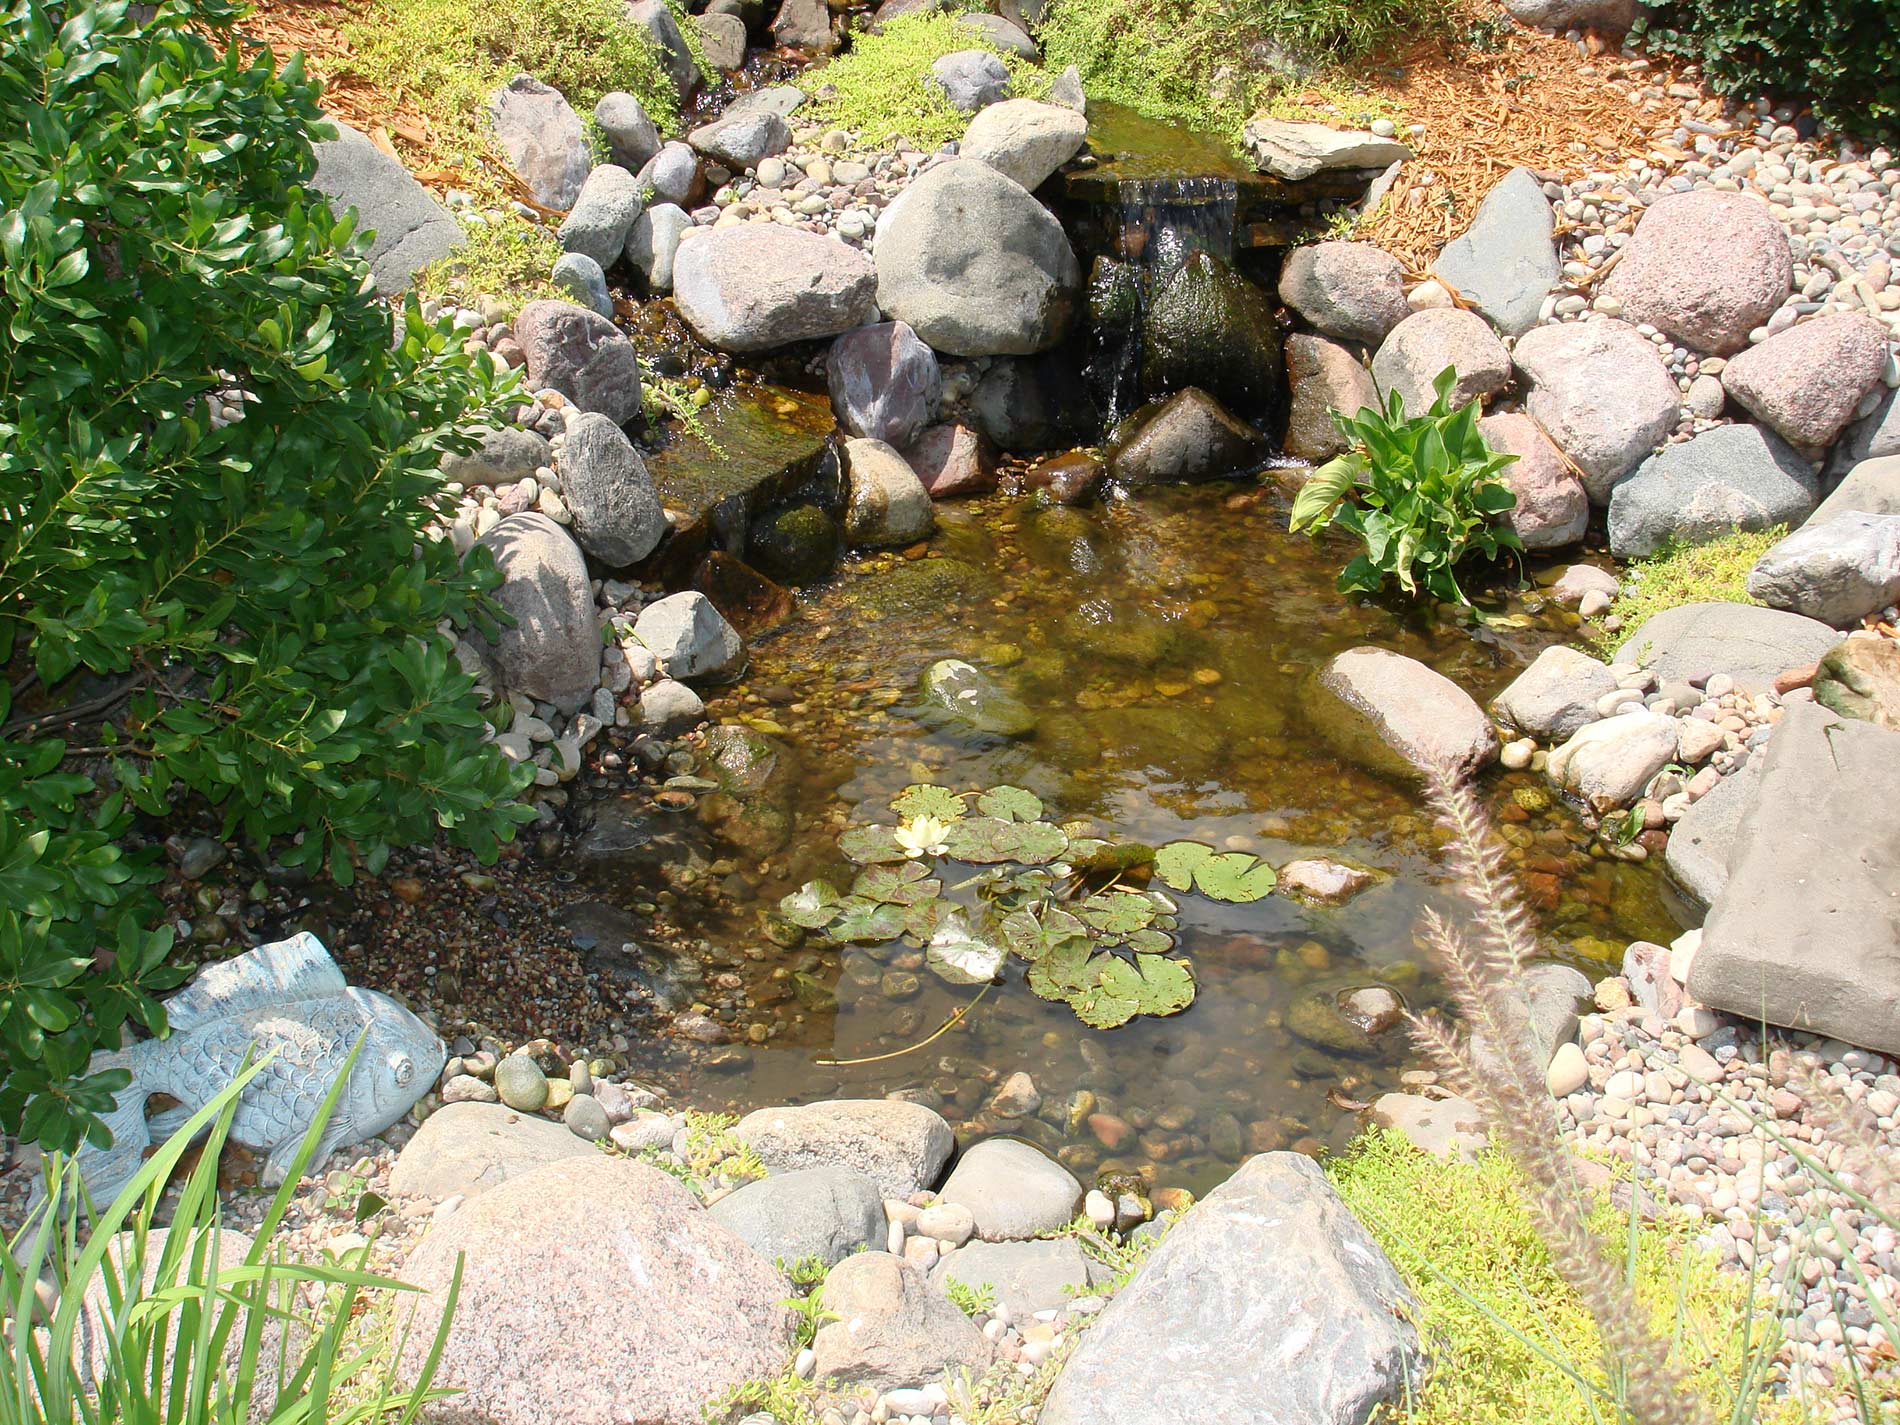 Add water features to your landscape